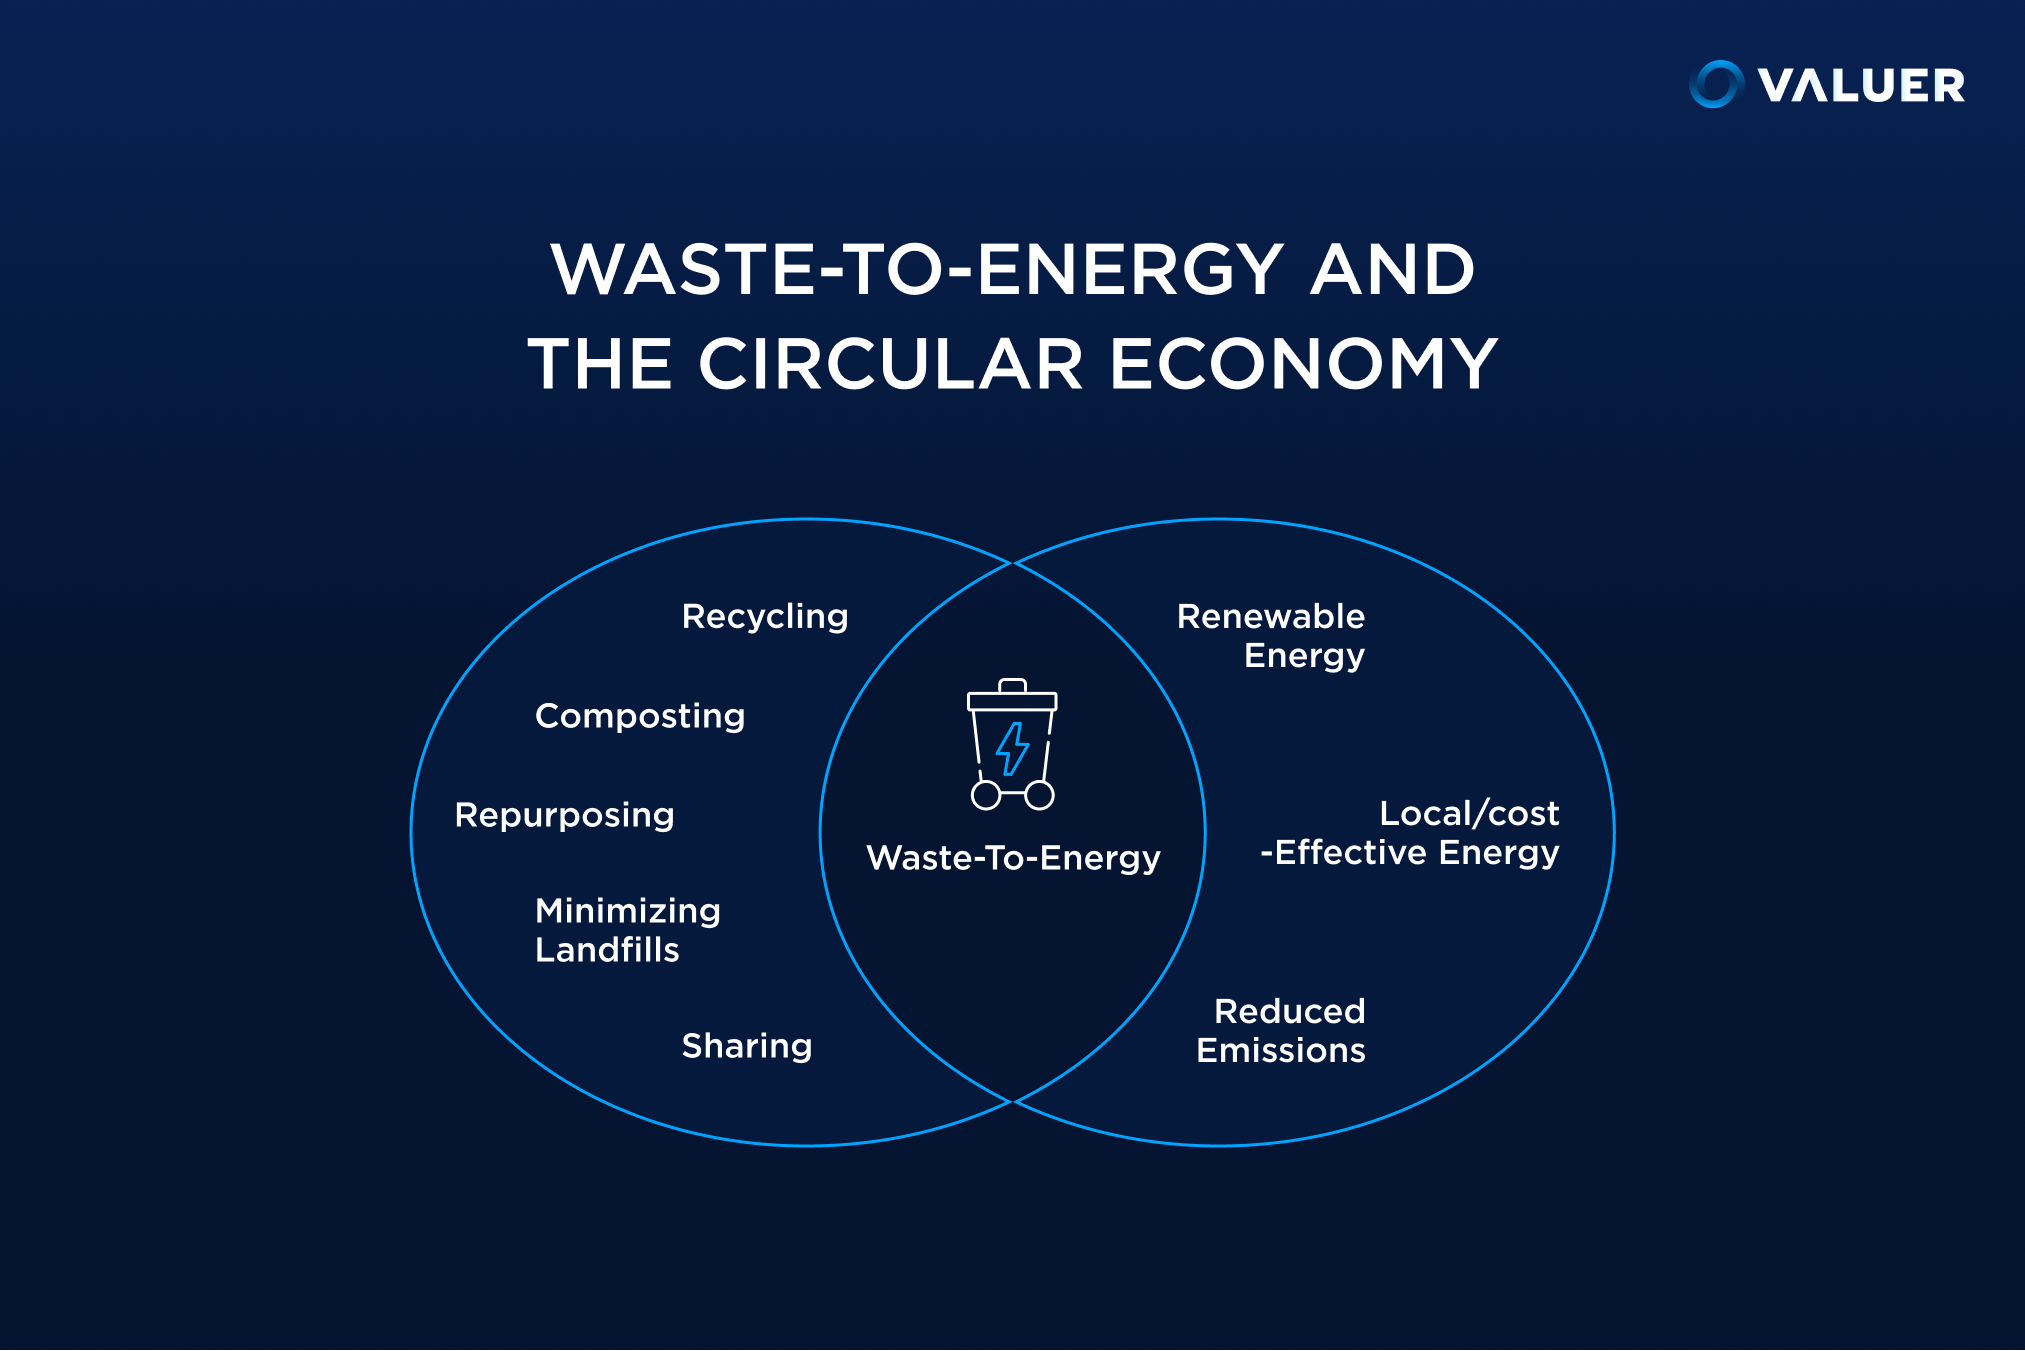 Waste-to-Energy and the Circular Economy infographic